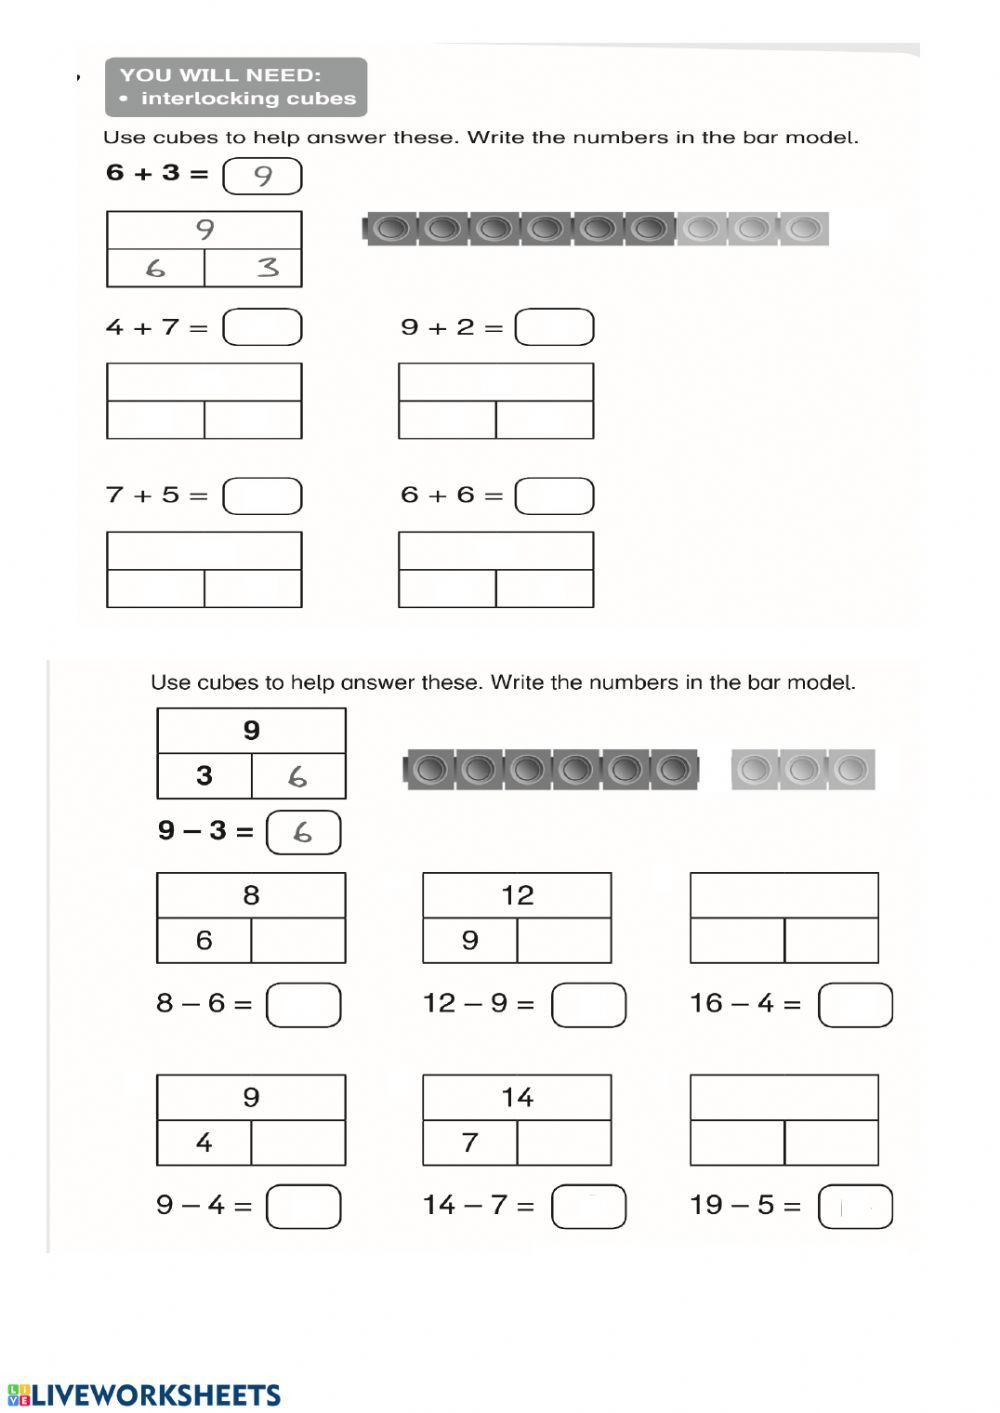 Bar Modeling Worksheets 2nd Grade Bar Models Worksheets 2nd Grade In 2020